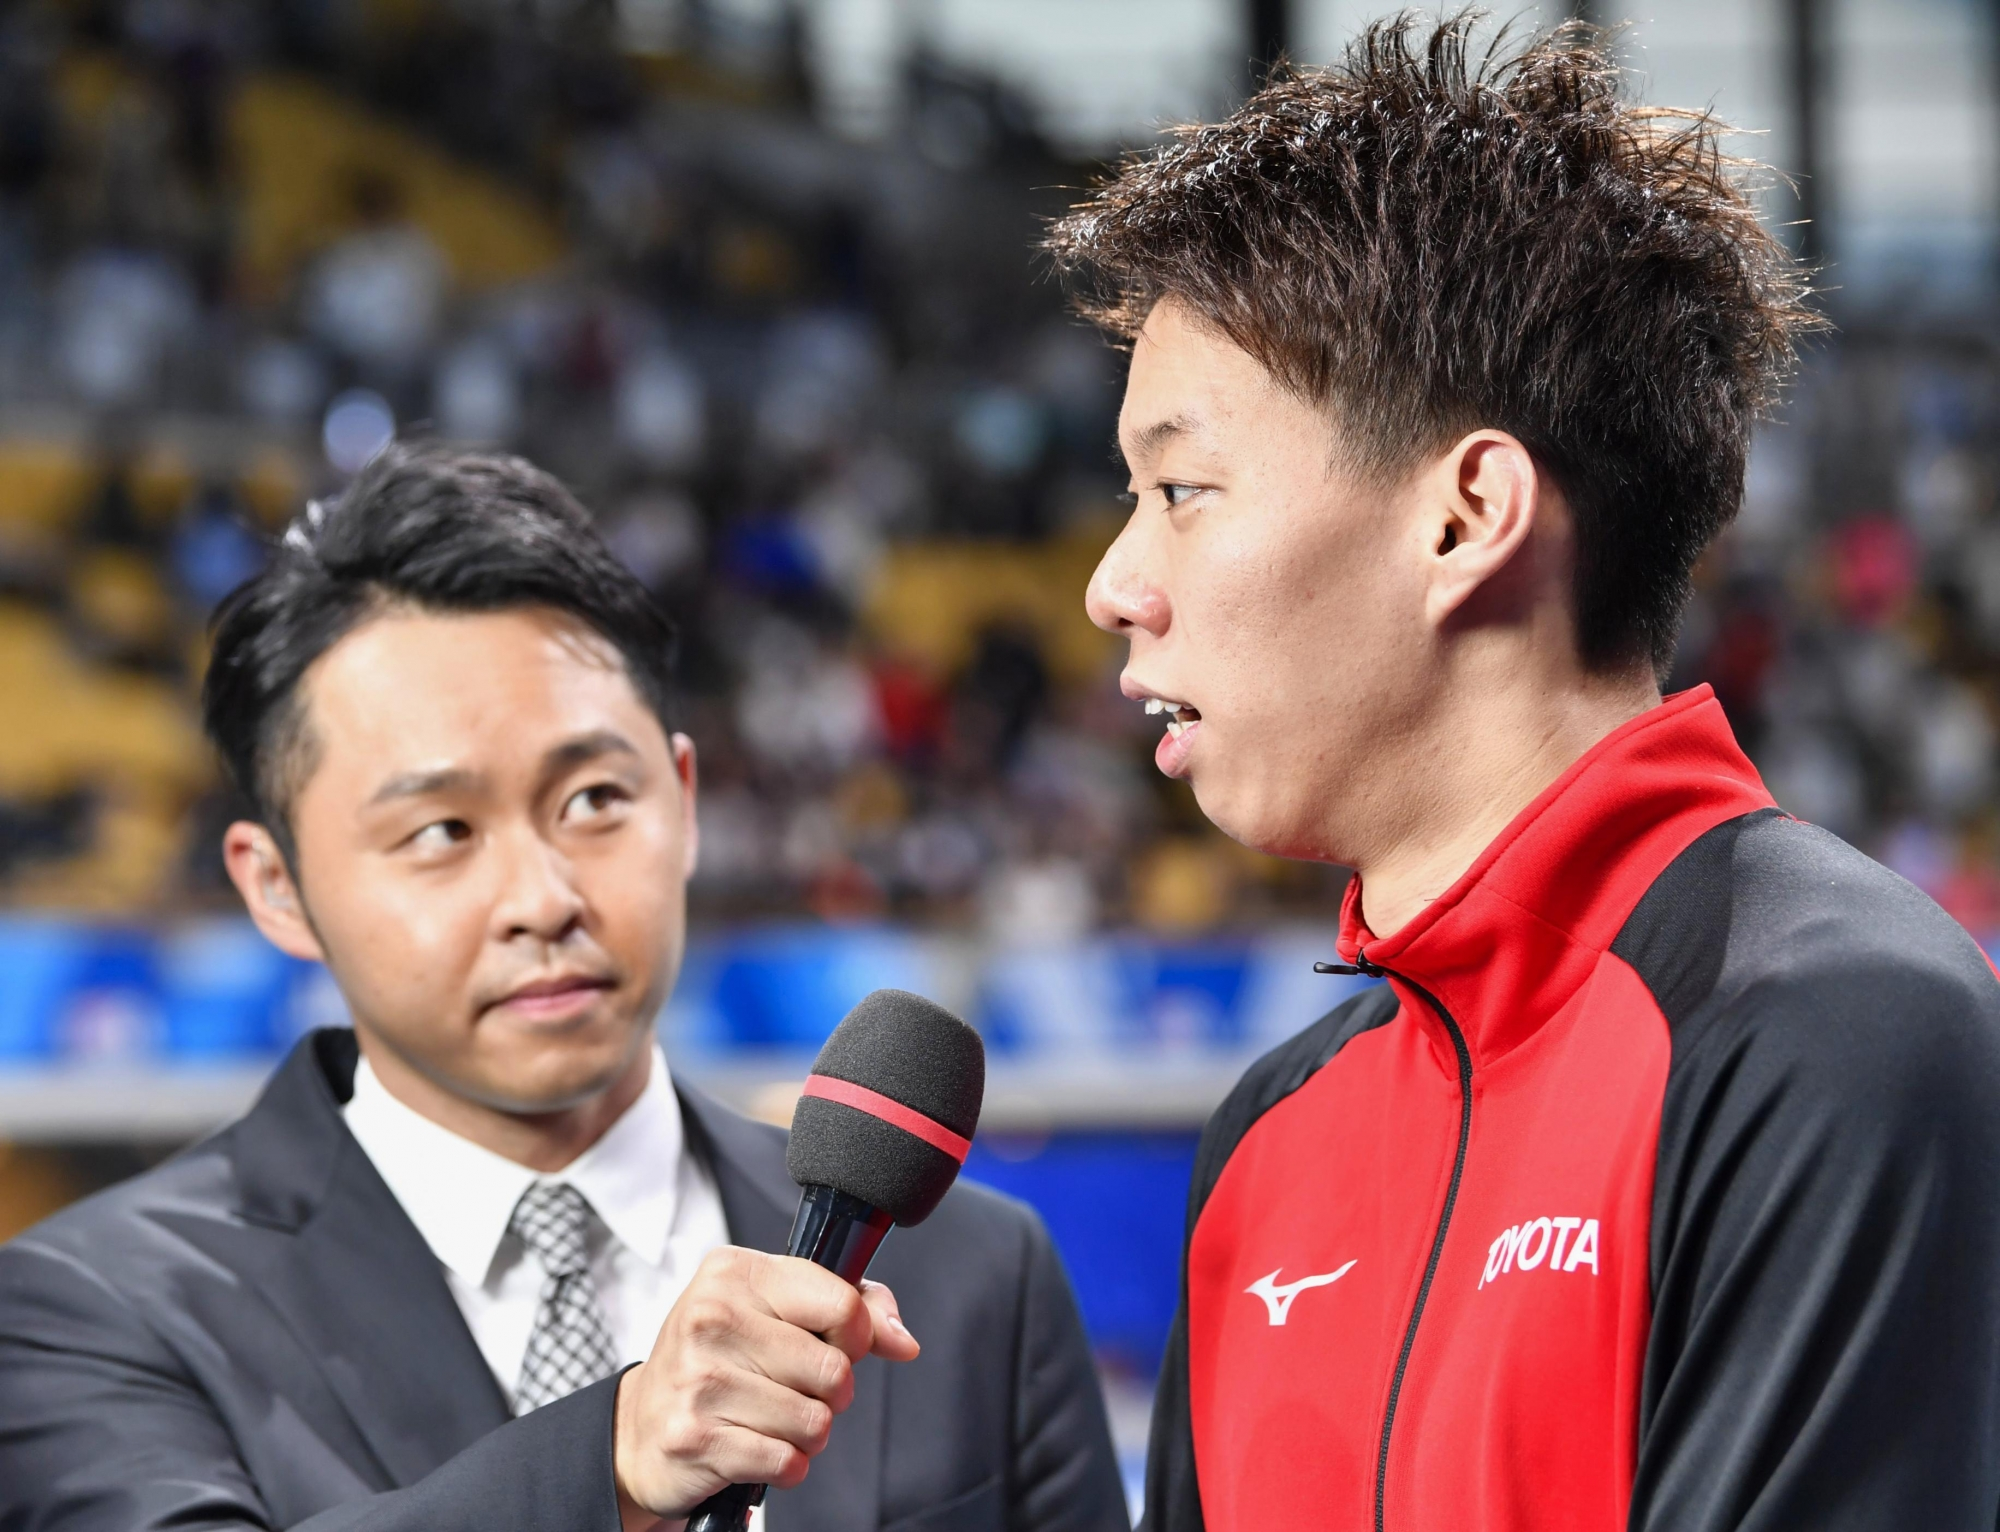 Swimmers Daiya Seto '17 and Ippei Watanabe '19 win a total of four gold medals at All Japan Championship